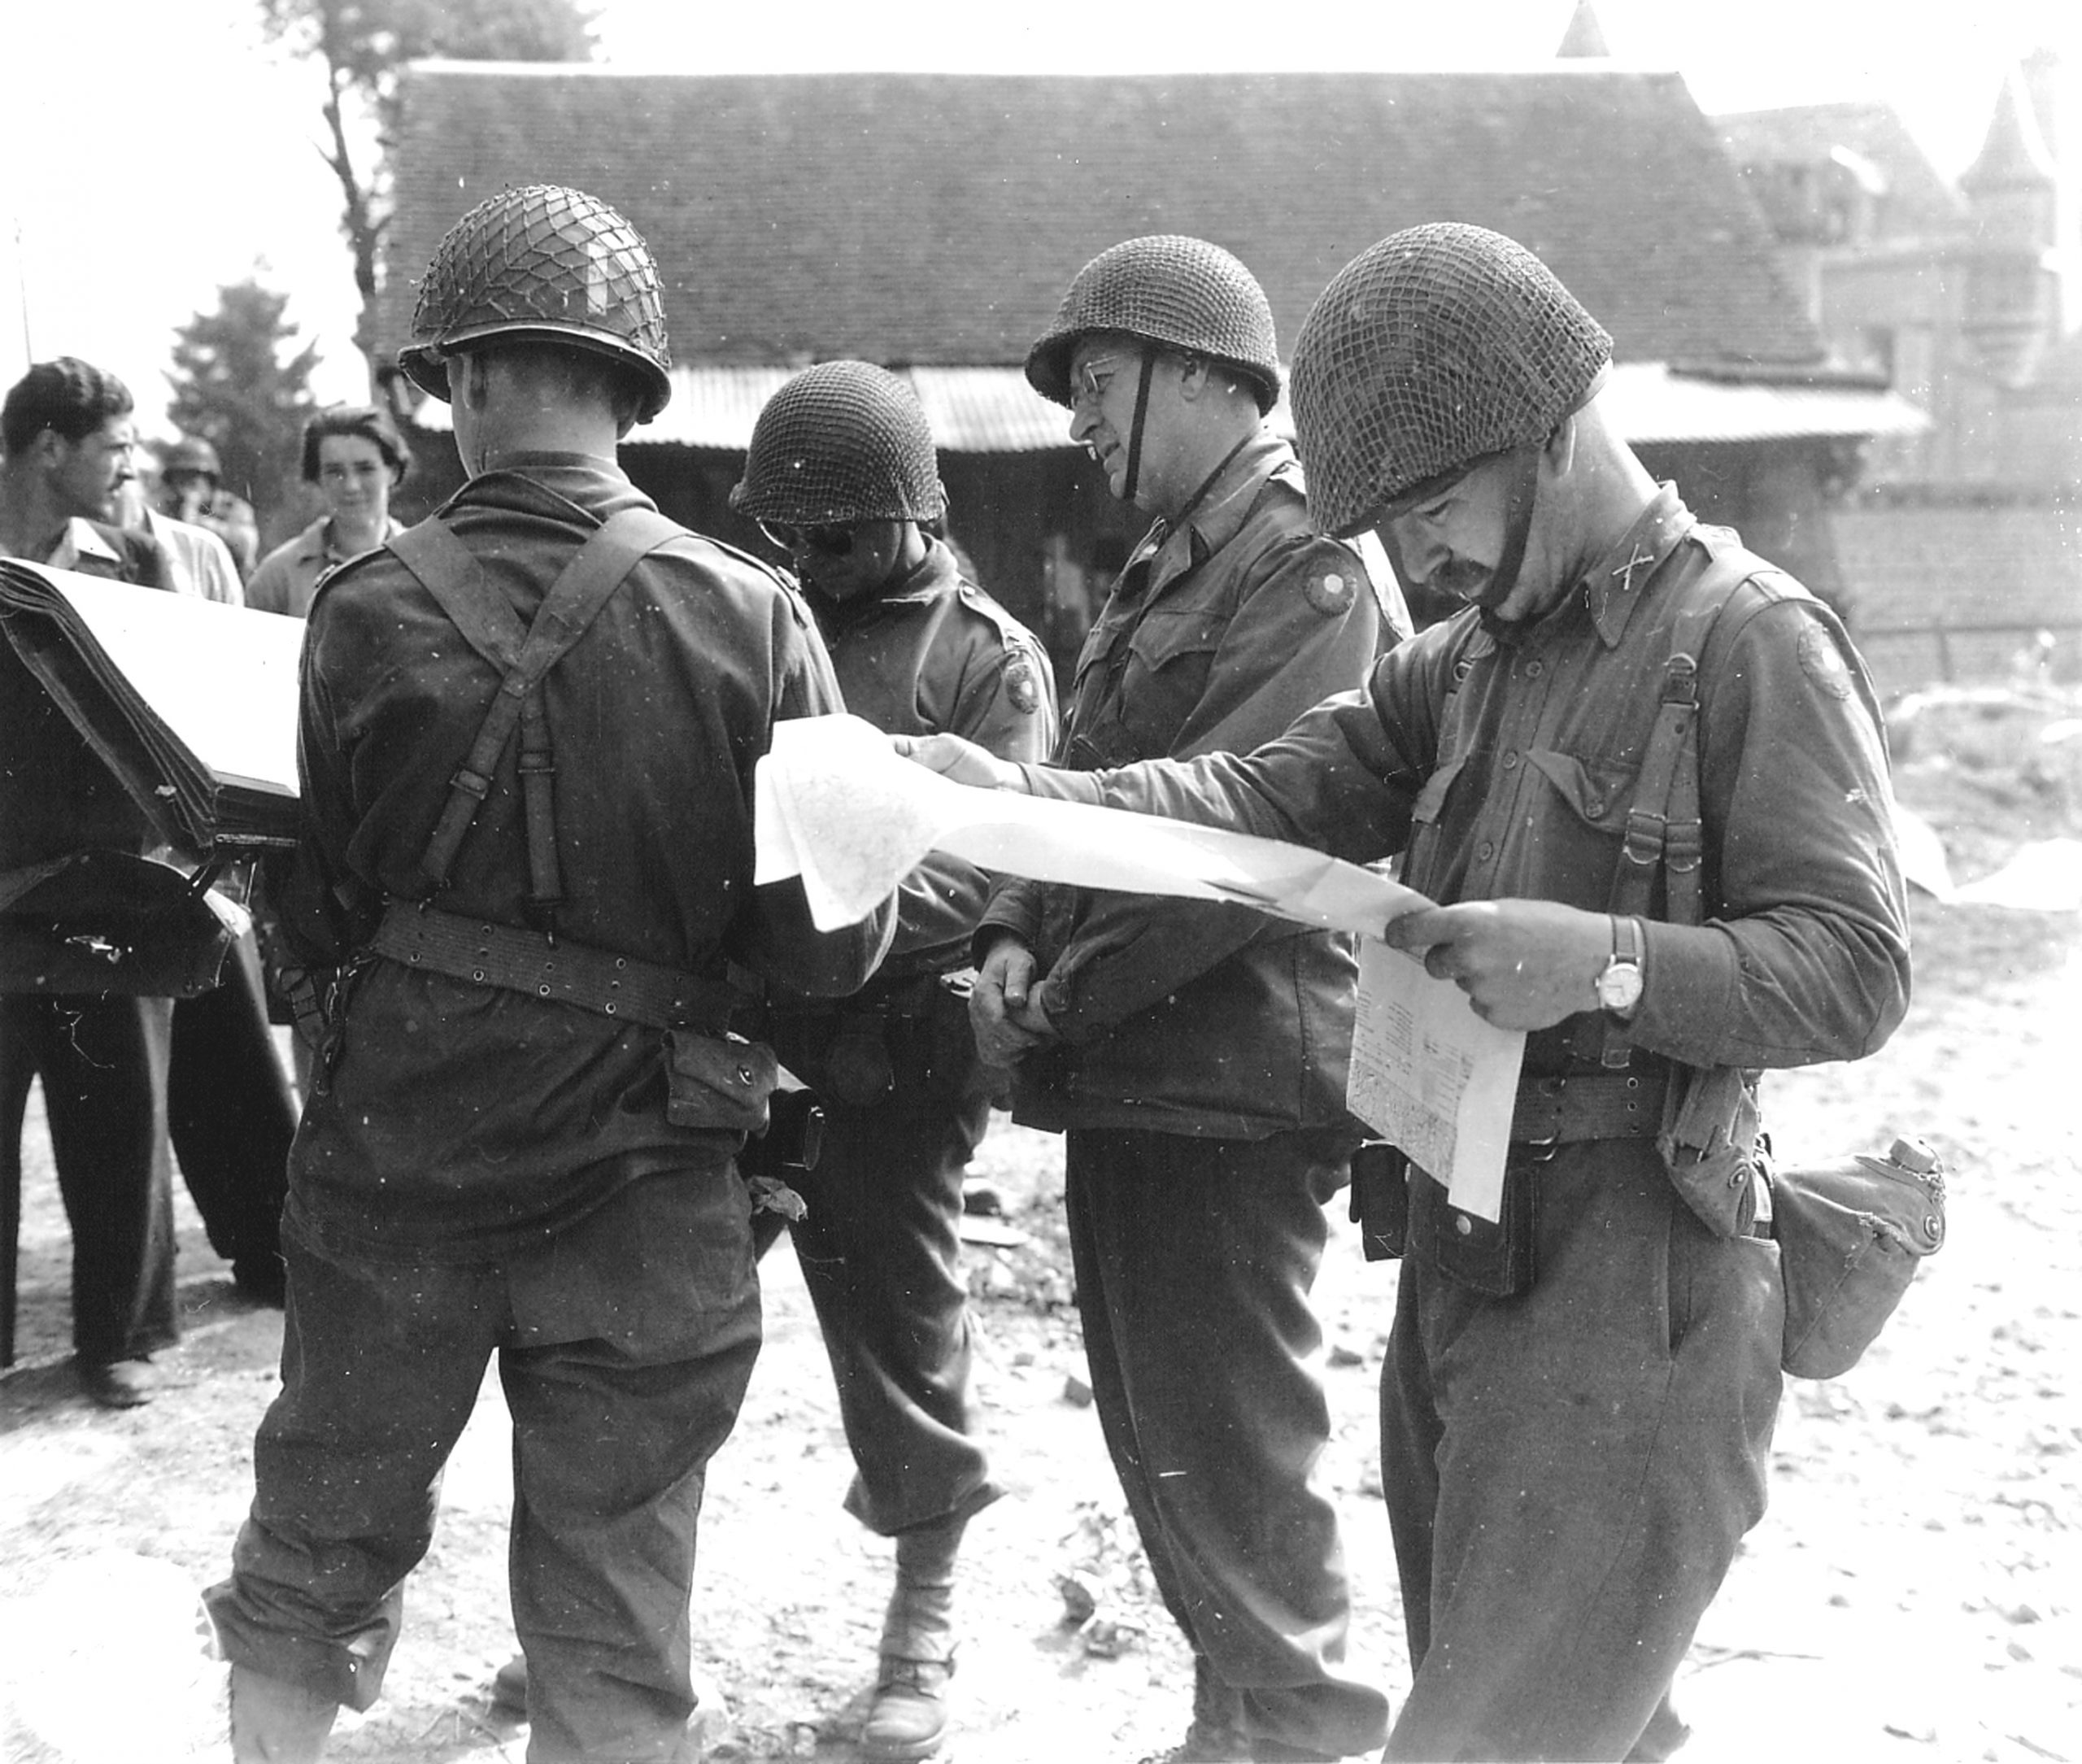 The commander of the 9th US Infantry Division, Gen Manton S. Eddy, studies a map of shortly after his division took the town of Beauvain from the Germans on August 16